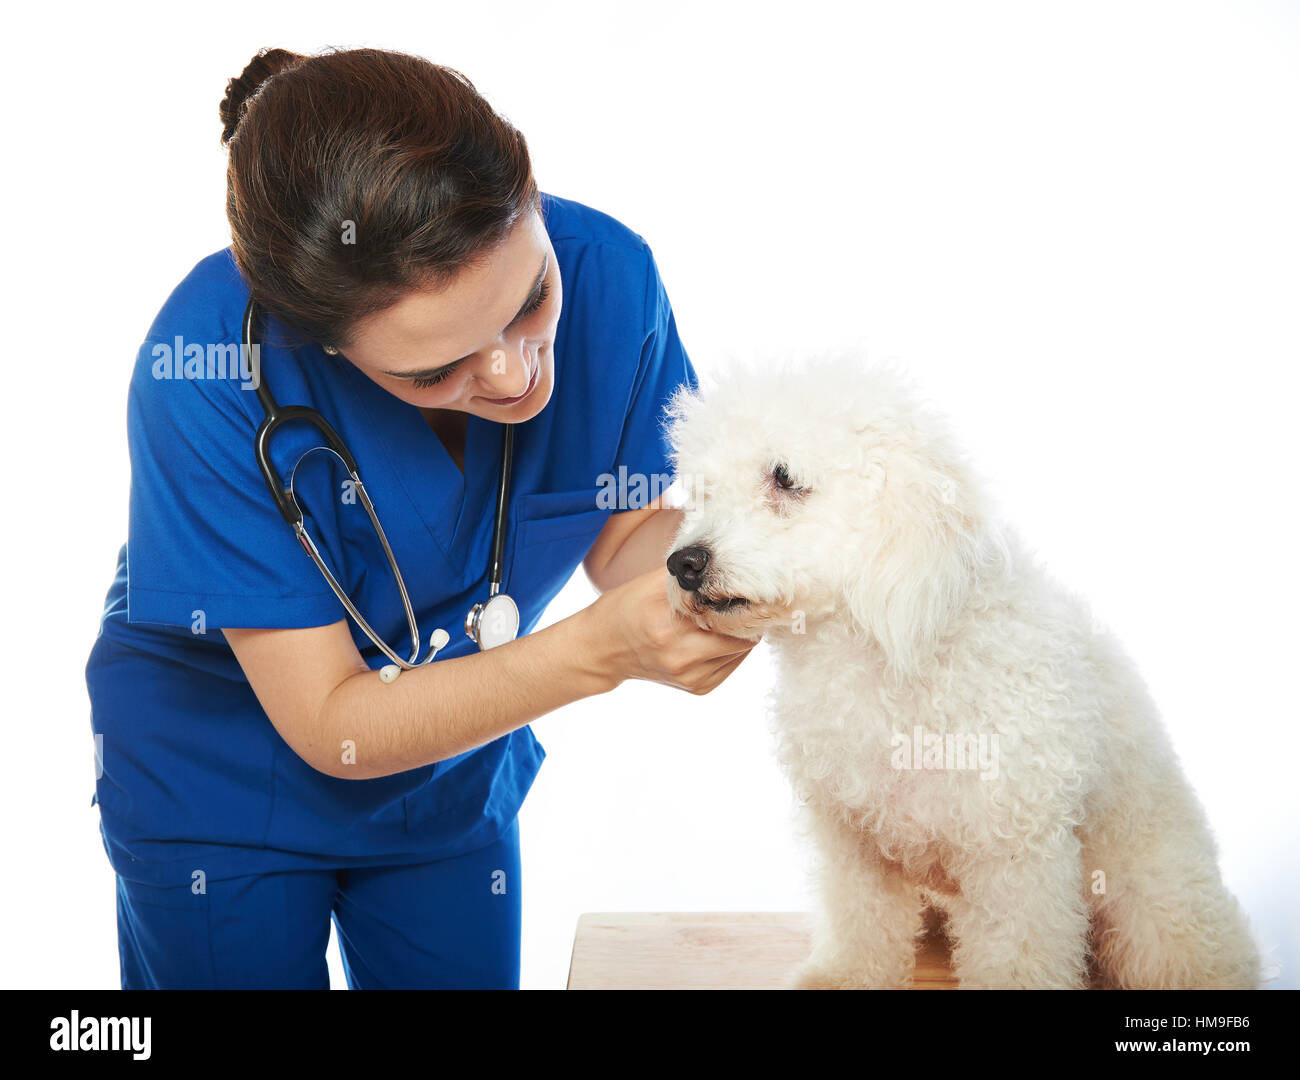 white poodle in veterinary check by woman nurse isolated on white - Stock Image